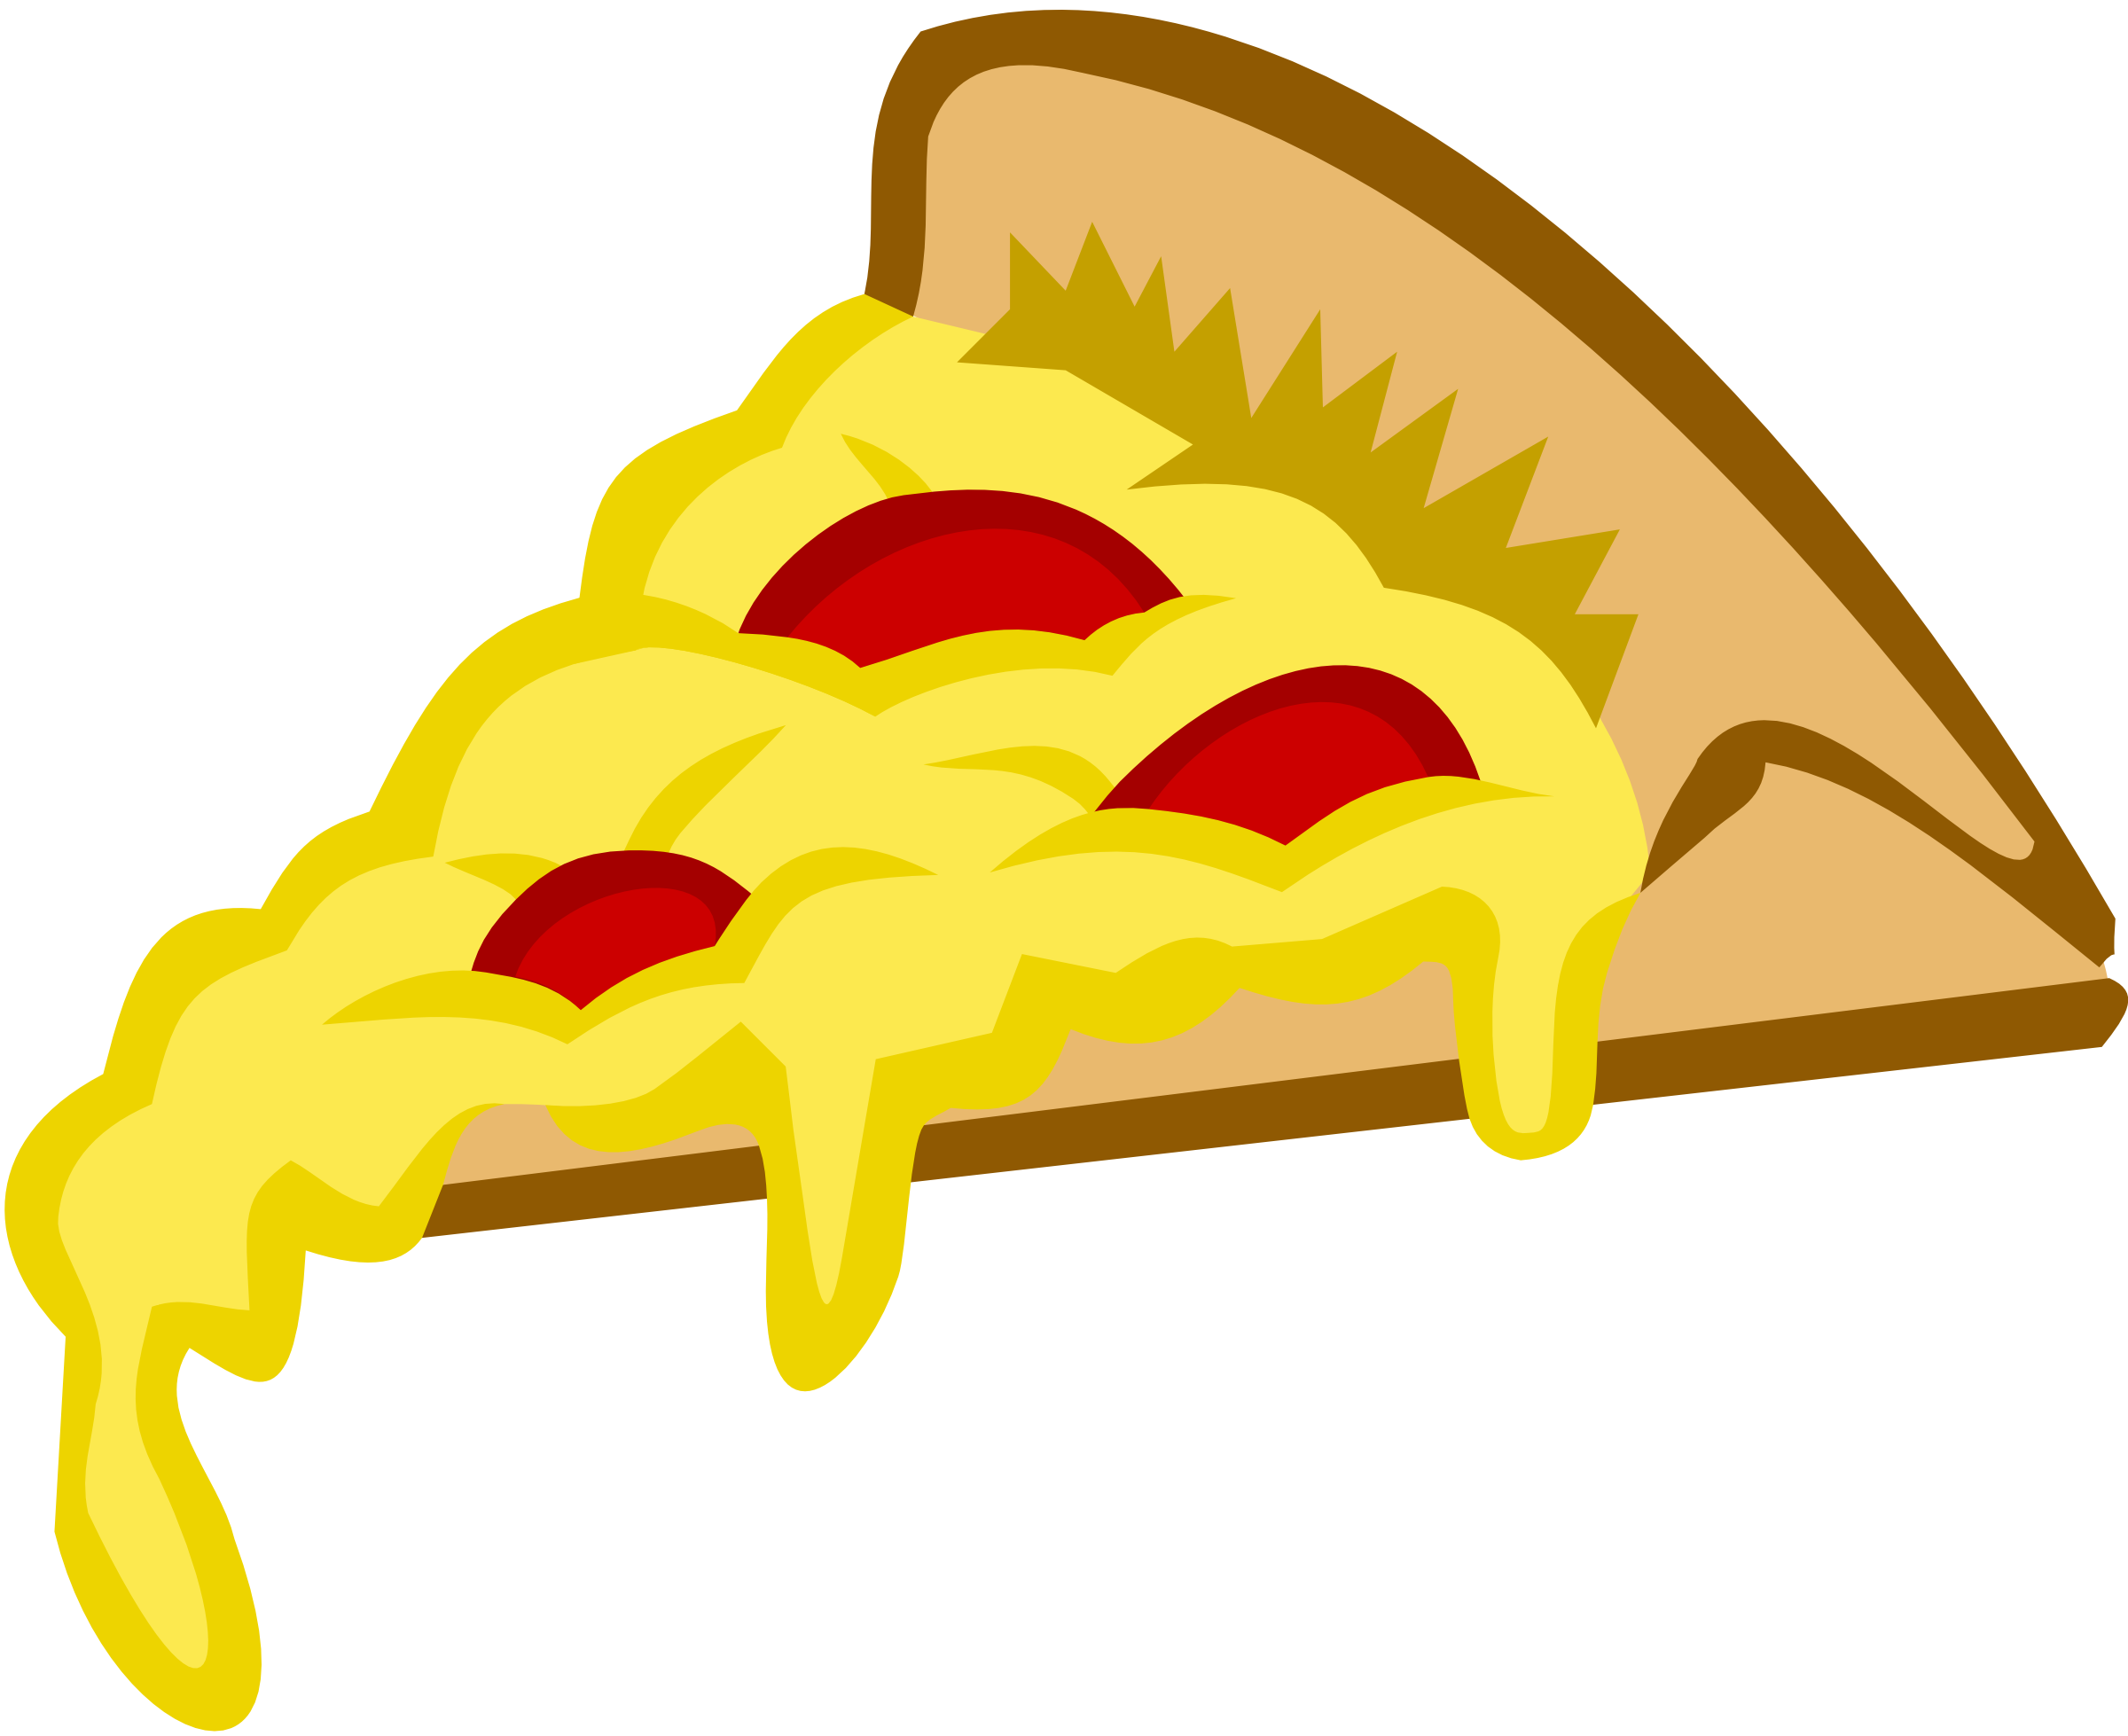 Box clip art panda. Moving clipart pizza